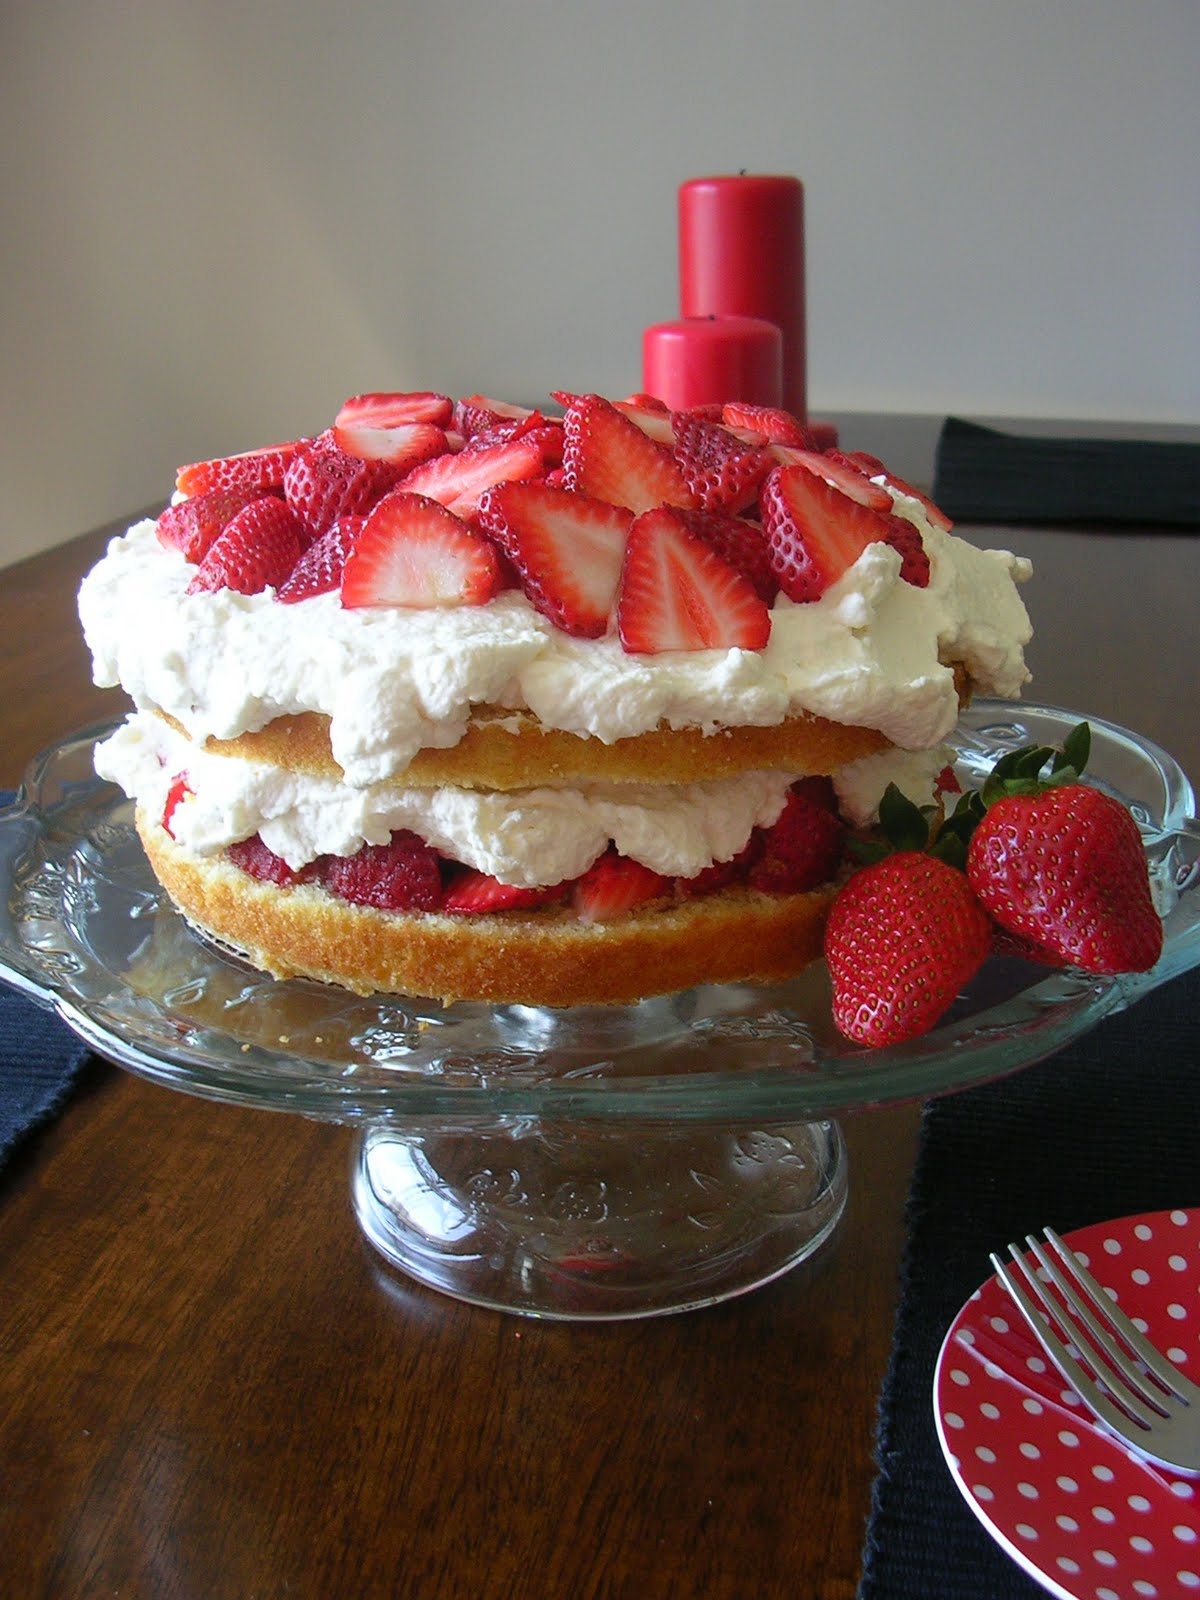 The Busty Baker: Strawberry Cream Cake